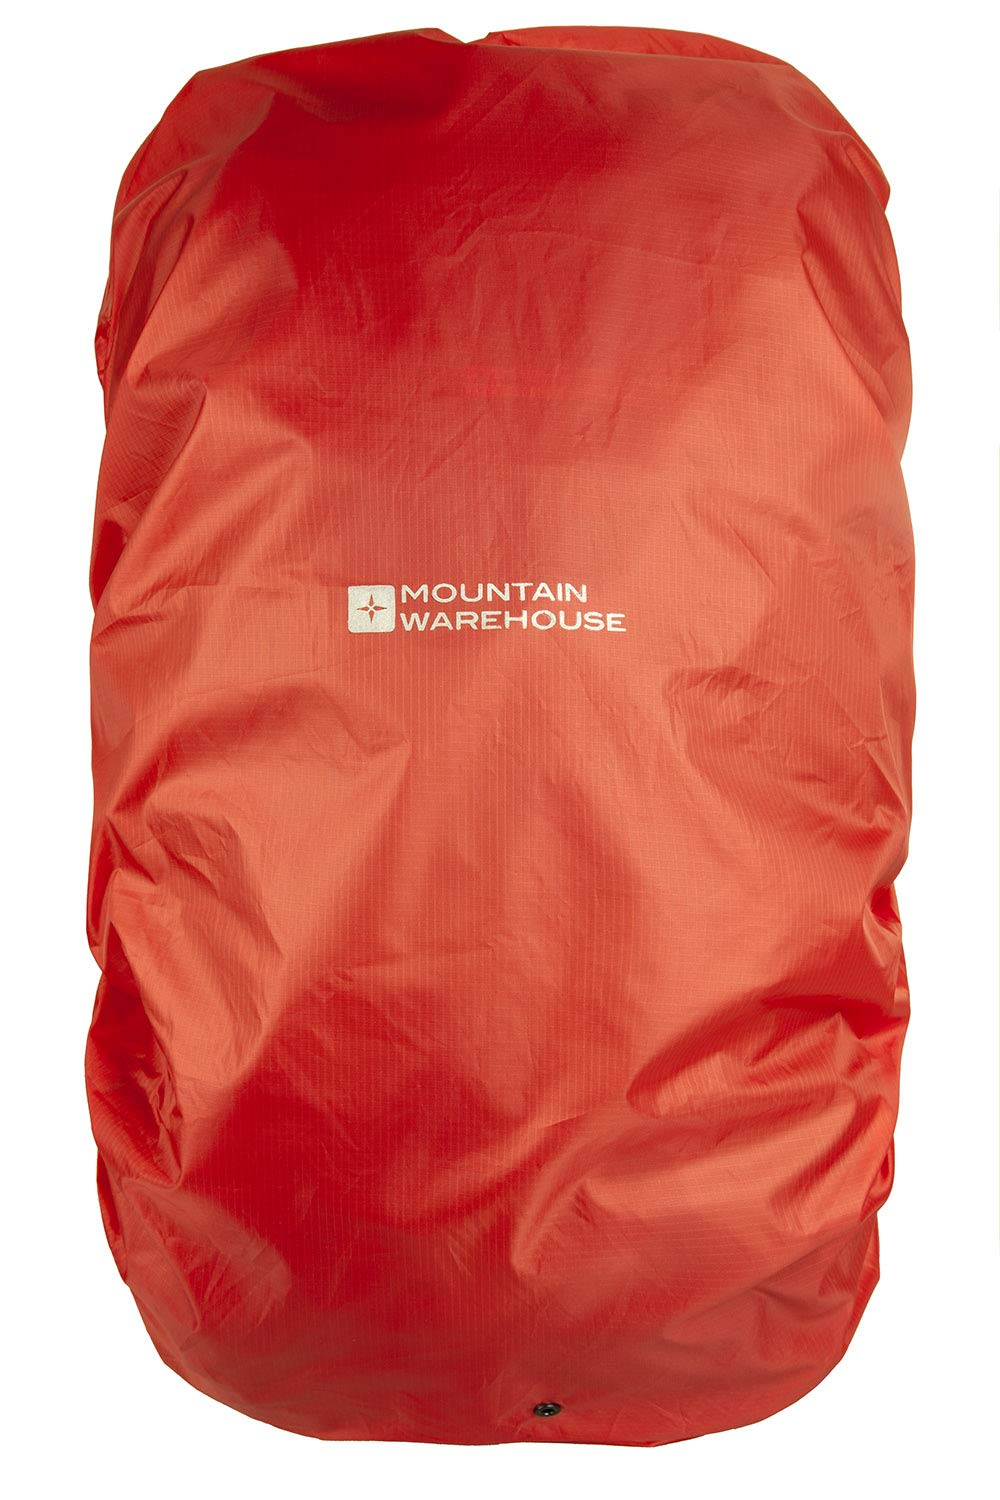 Mountain Warehouse Rucksack Rain Cover Small - 20-35L Backpack Cover Orange 022392036001